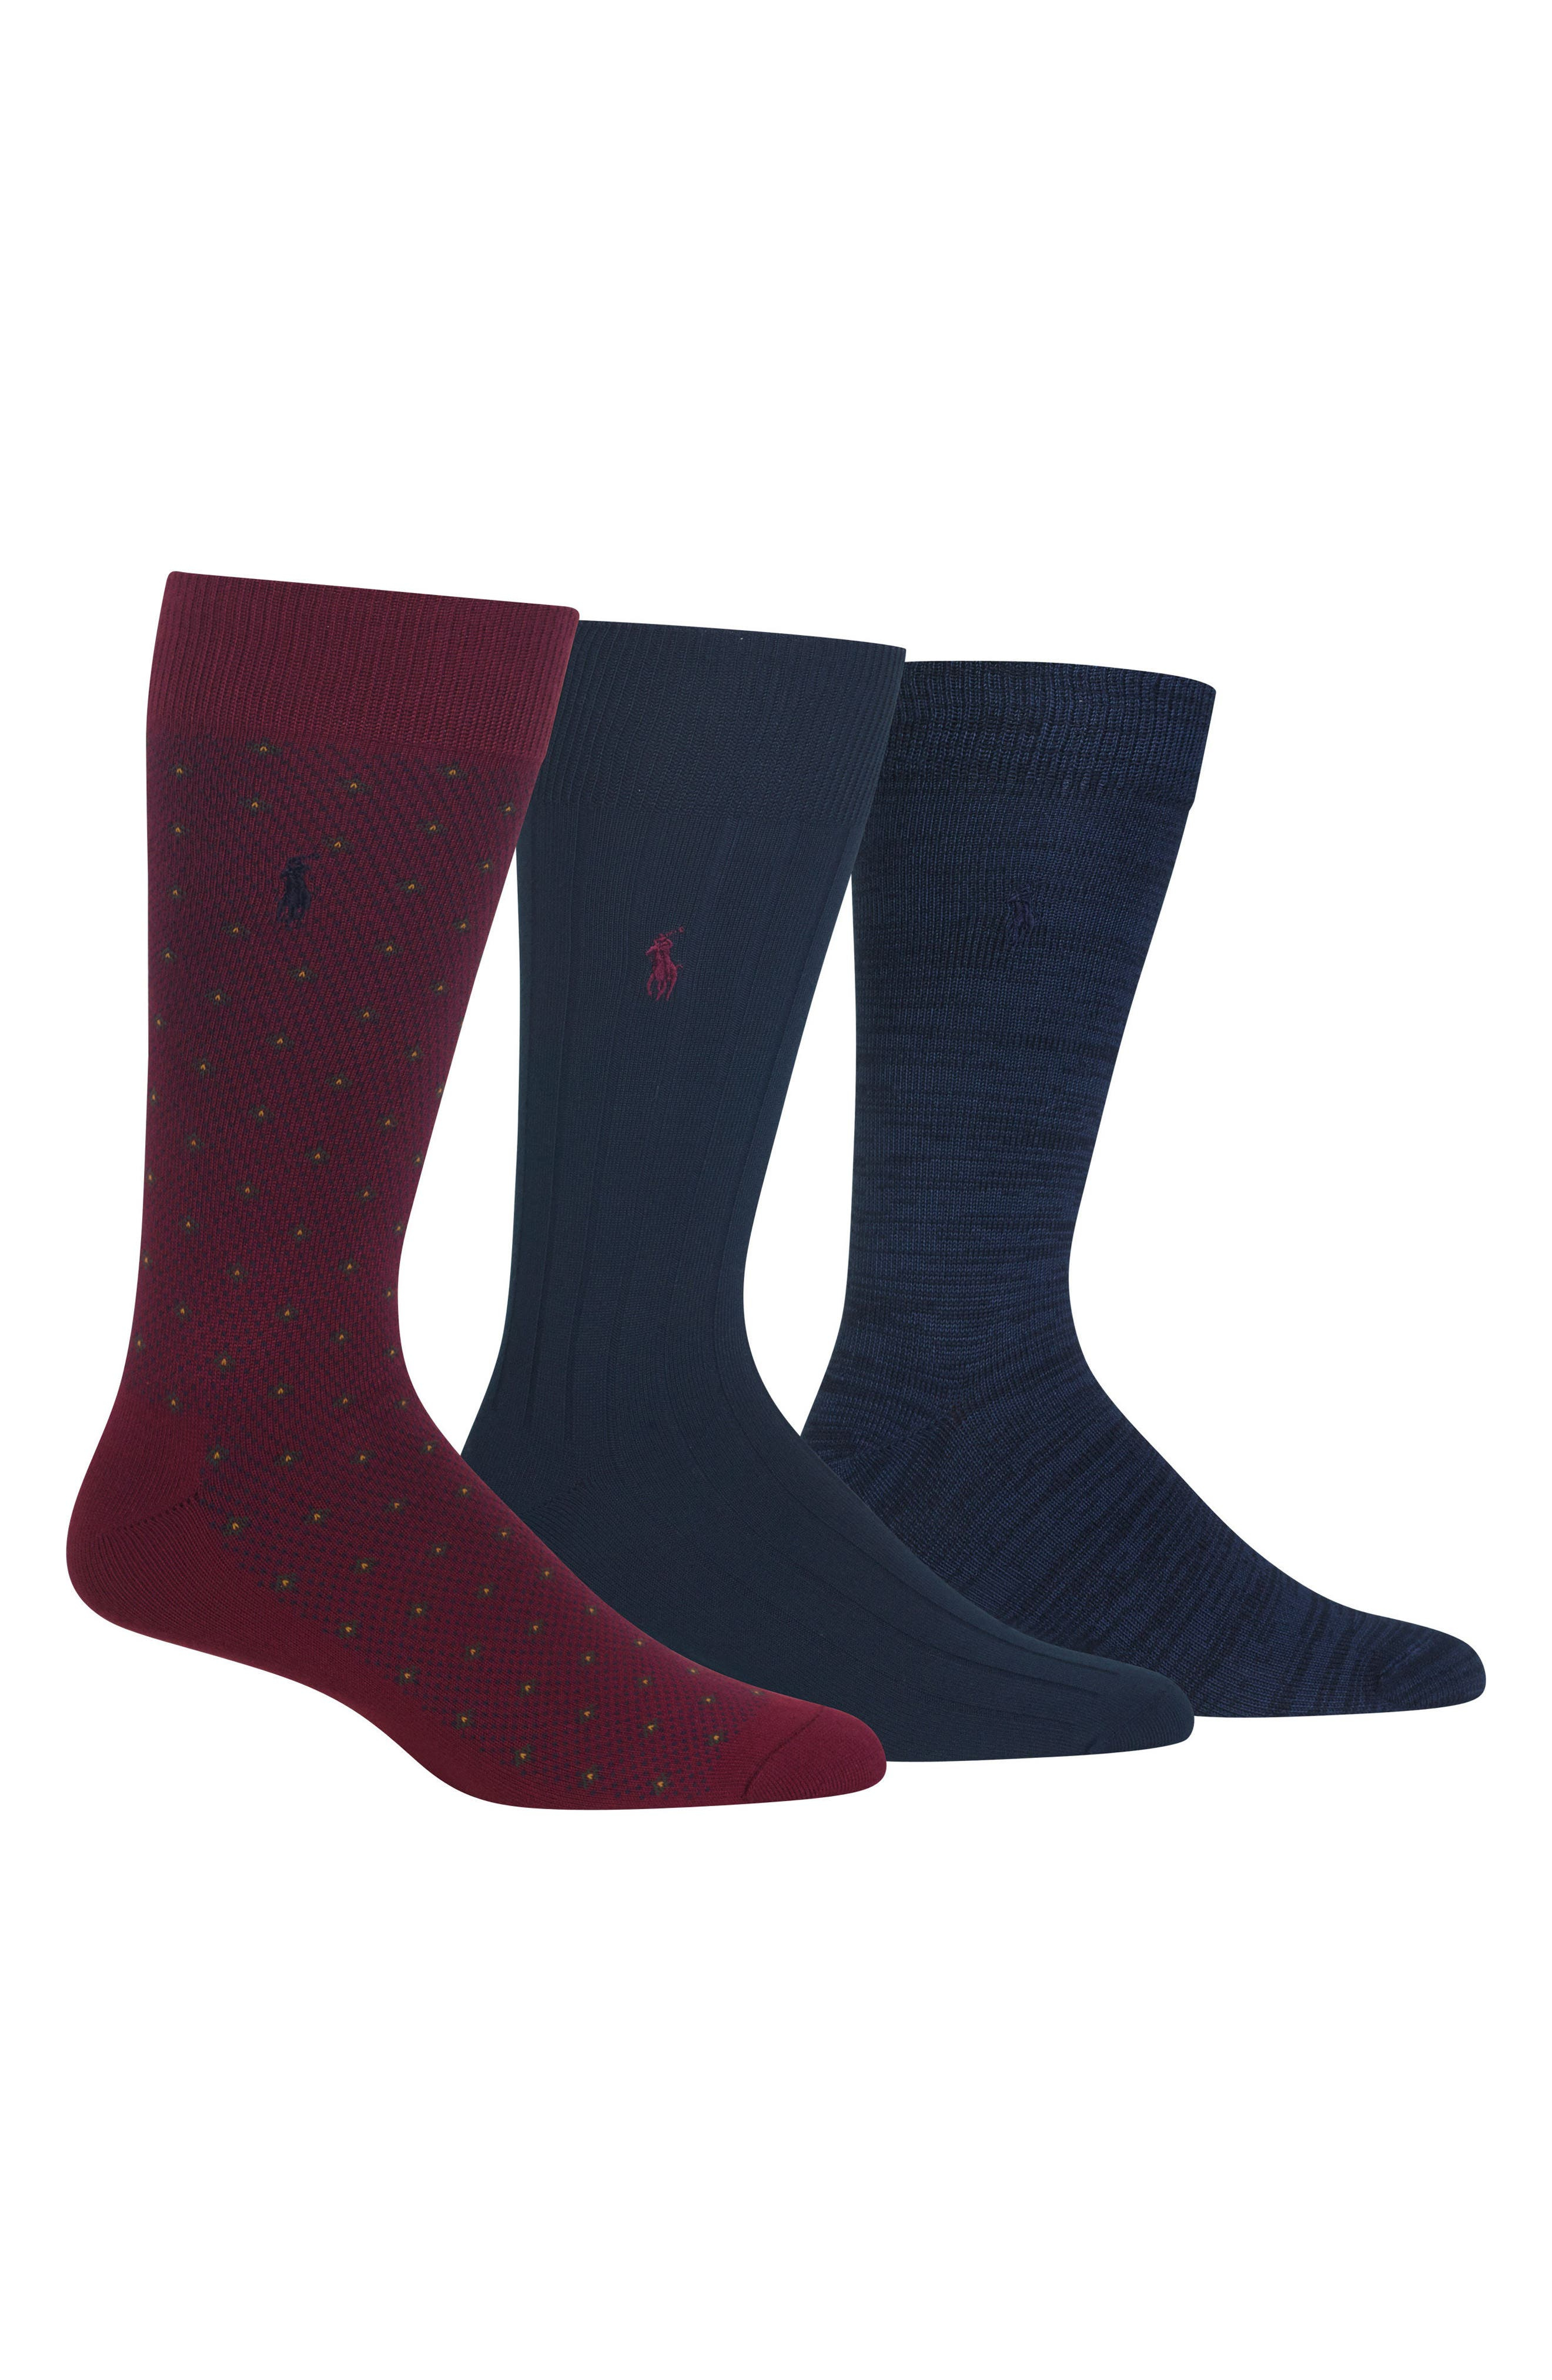 Supersoft Diamond Dot Assorted 3-Pack Socks,                             Main thumbnail 1, color,                             937